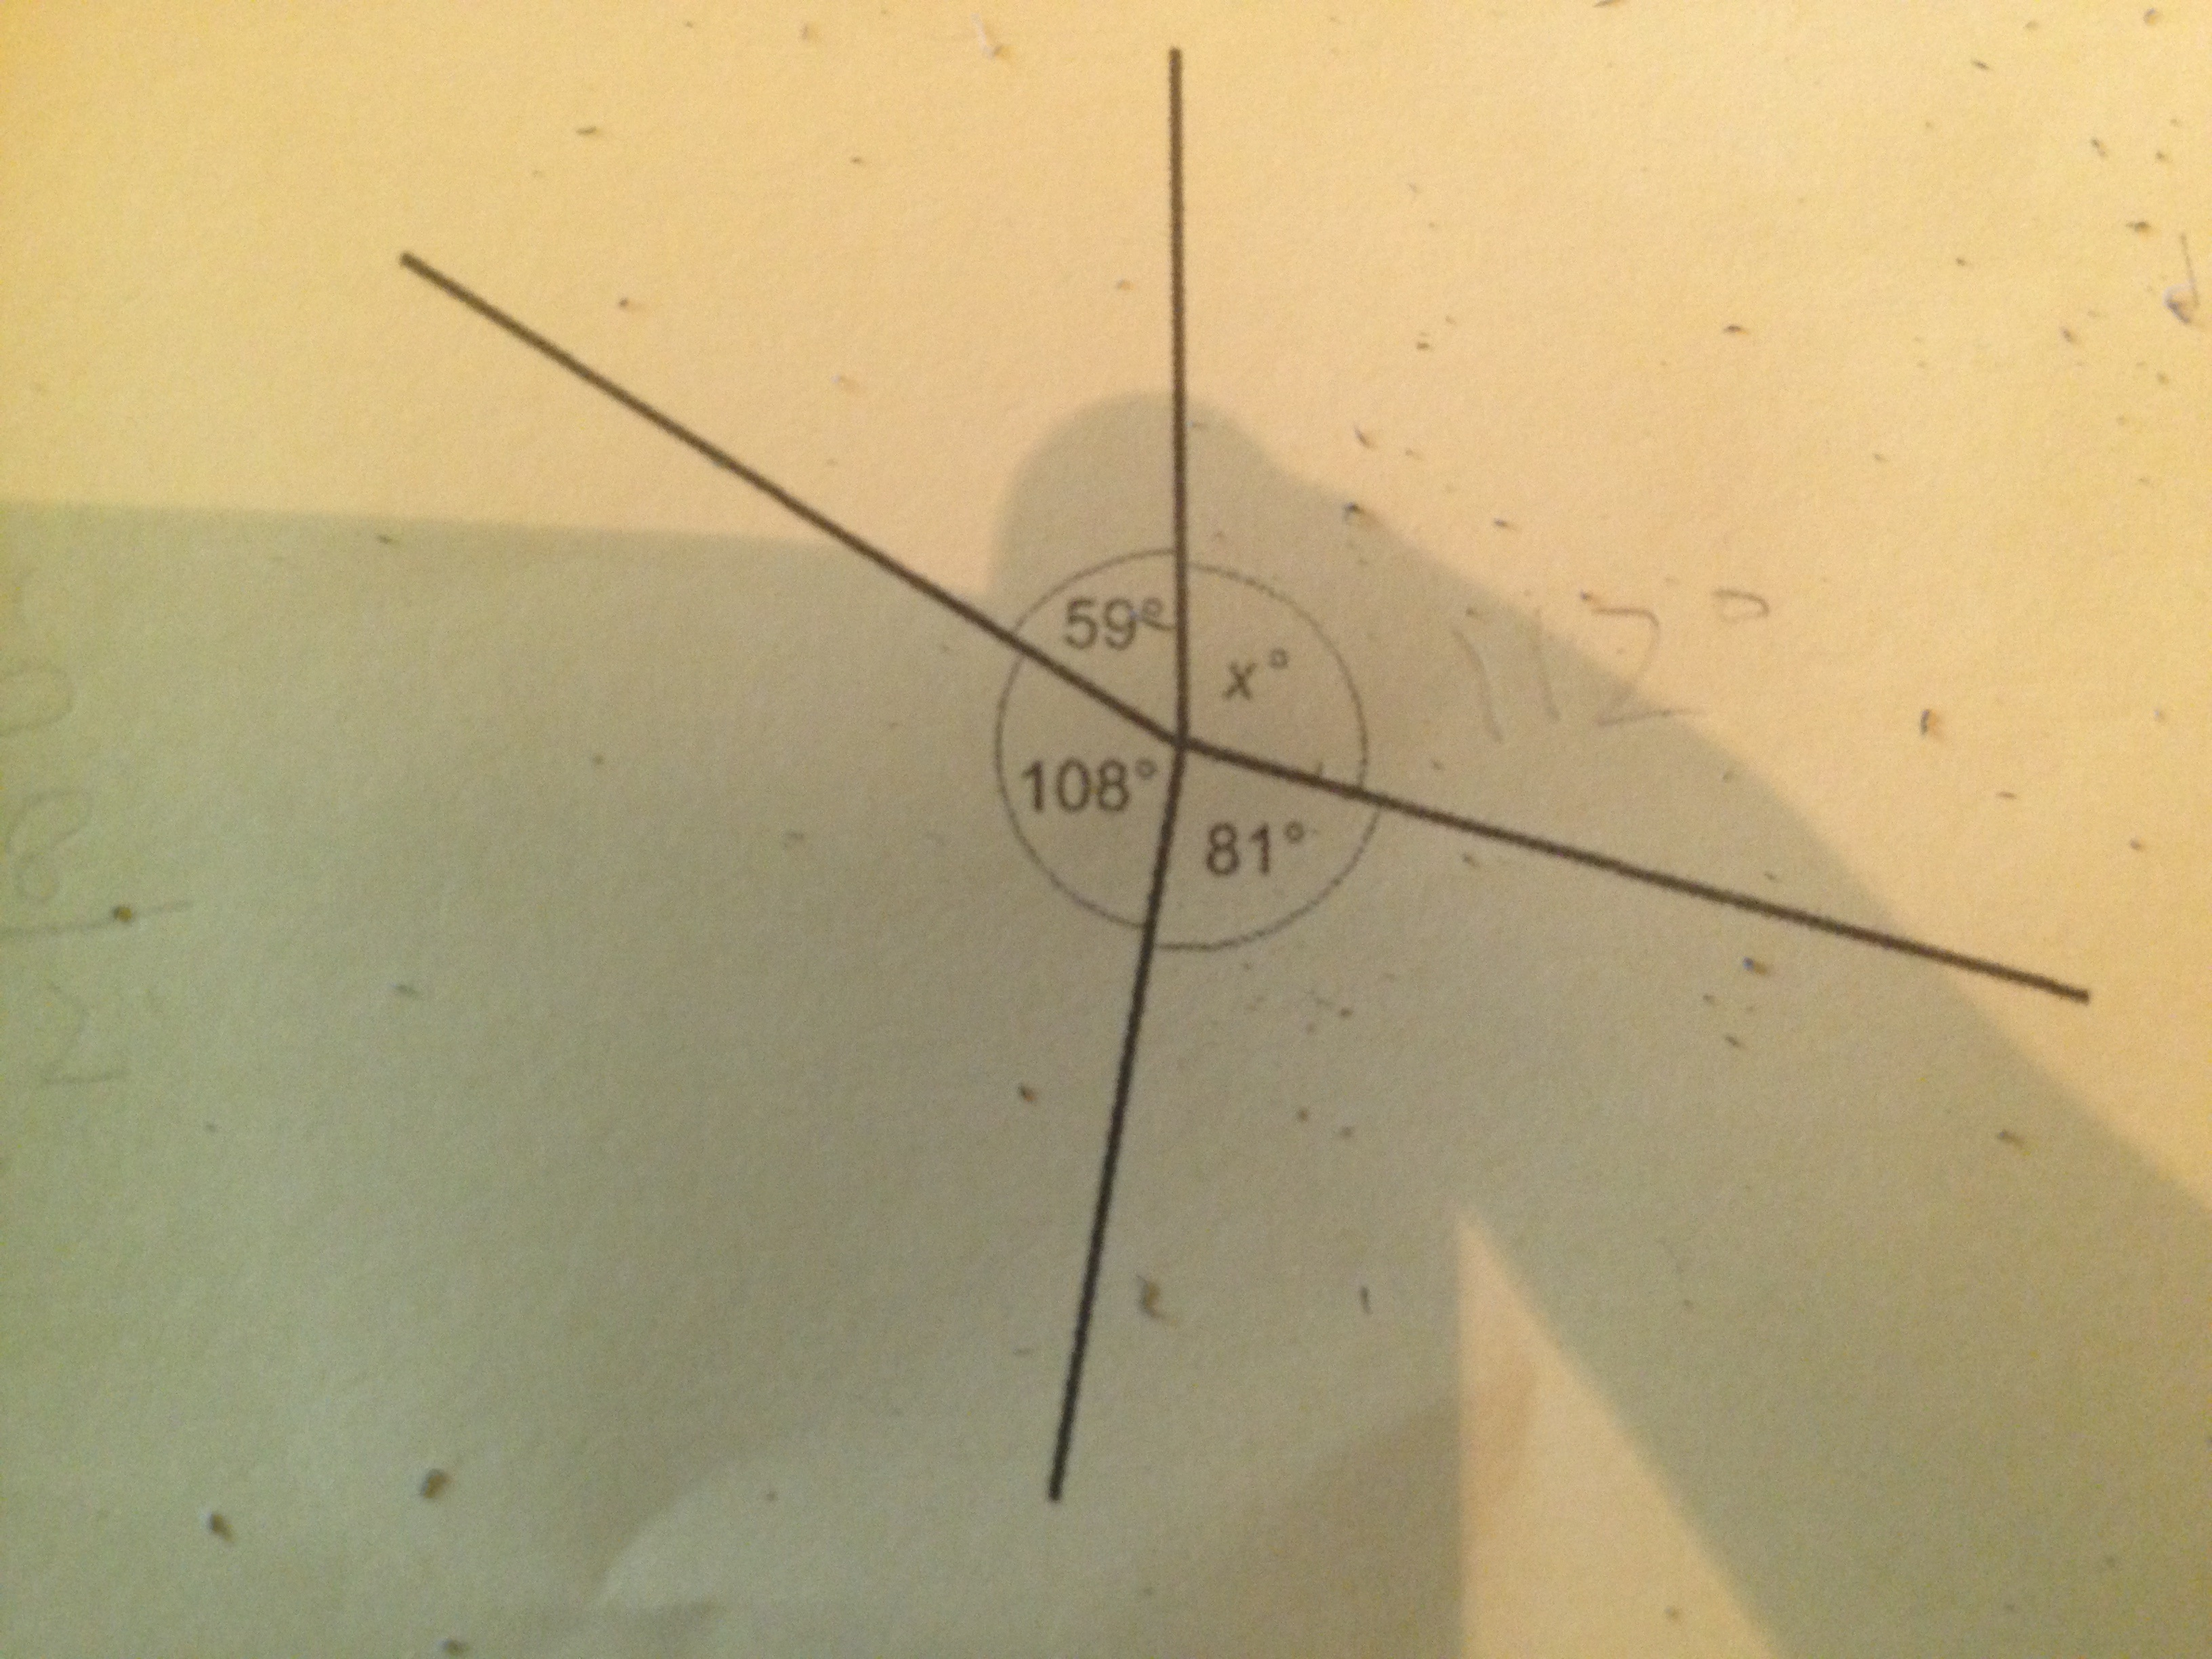 All Angles In The Diagram Are Measured To The Nearest